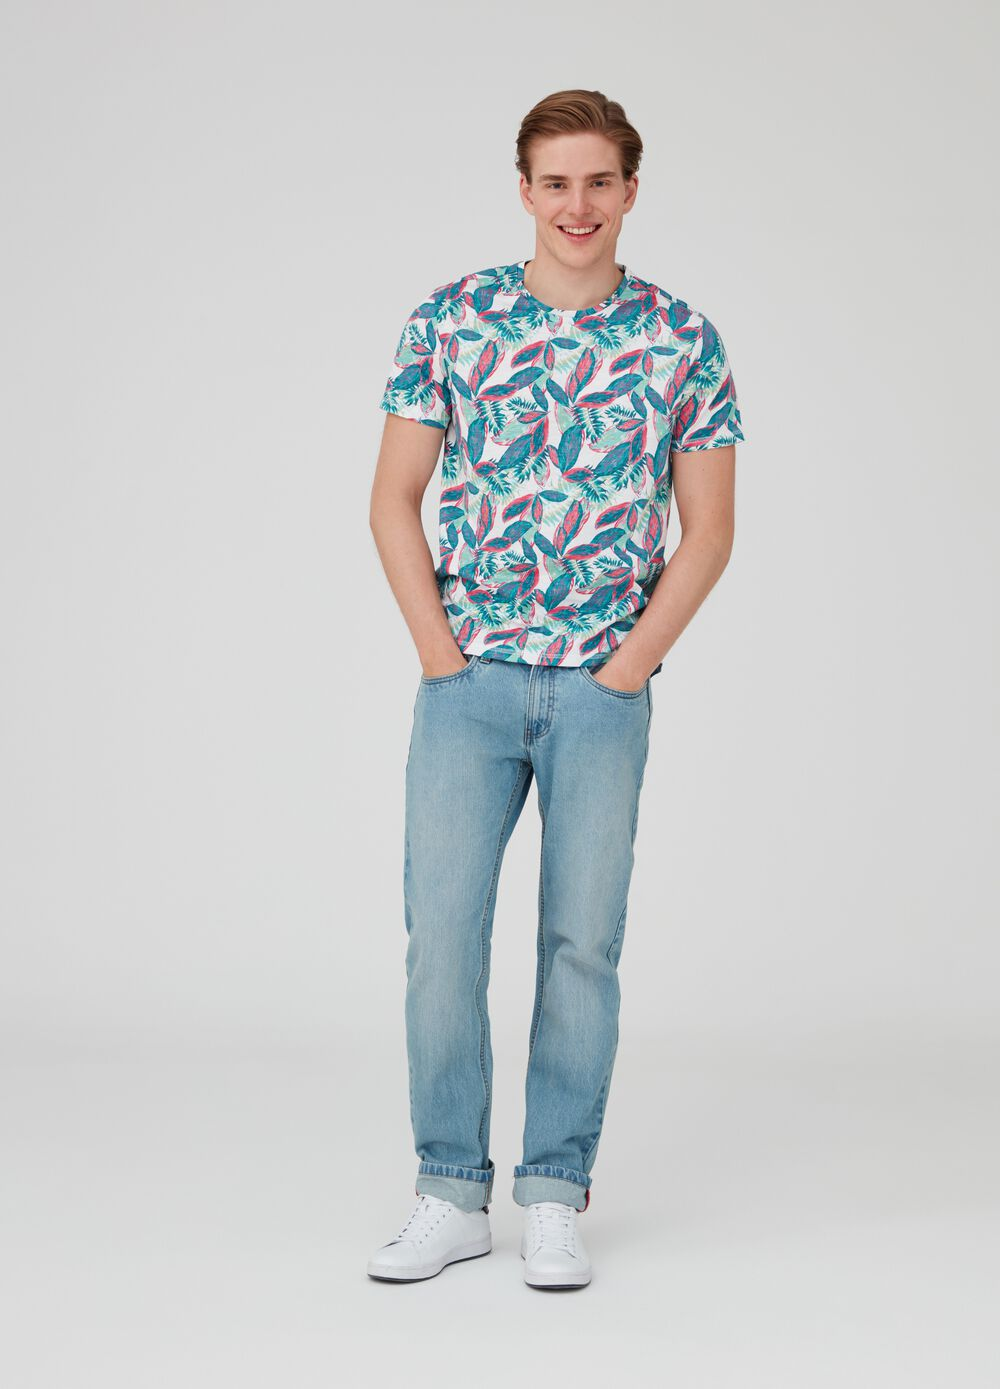 Foliage patterned T-shirt by Maui and Sons